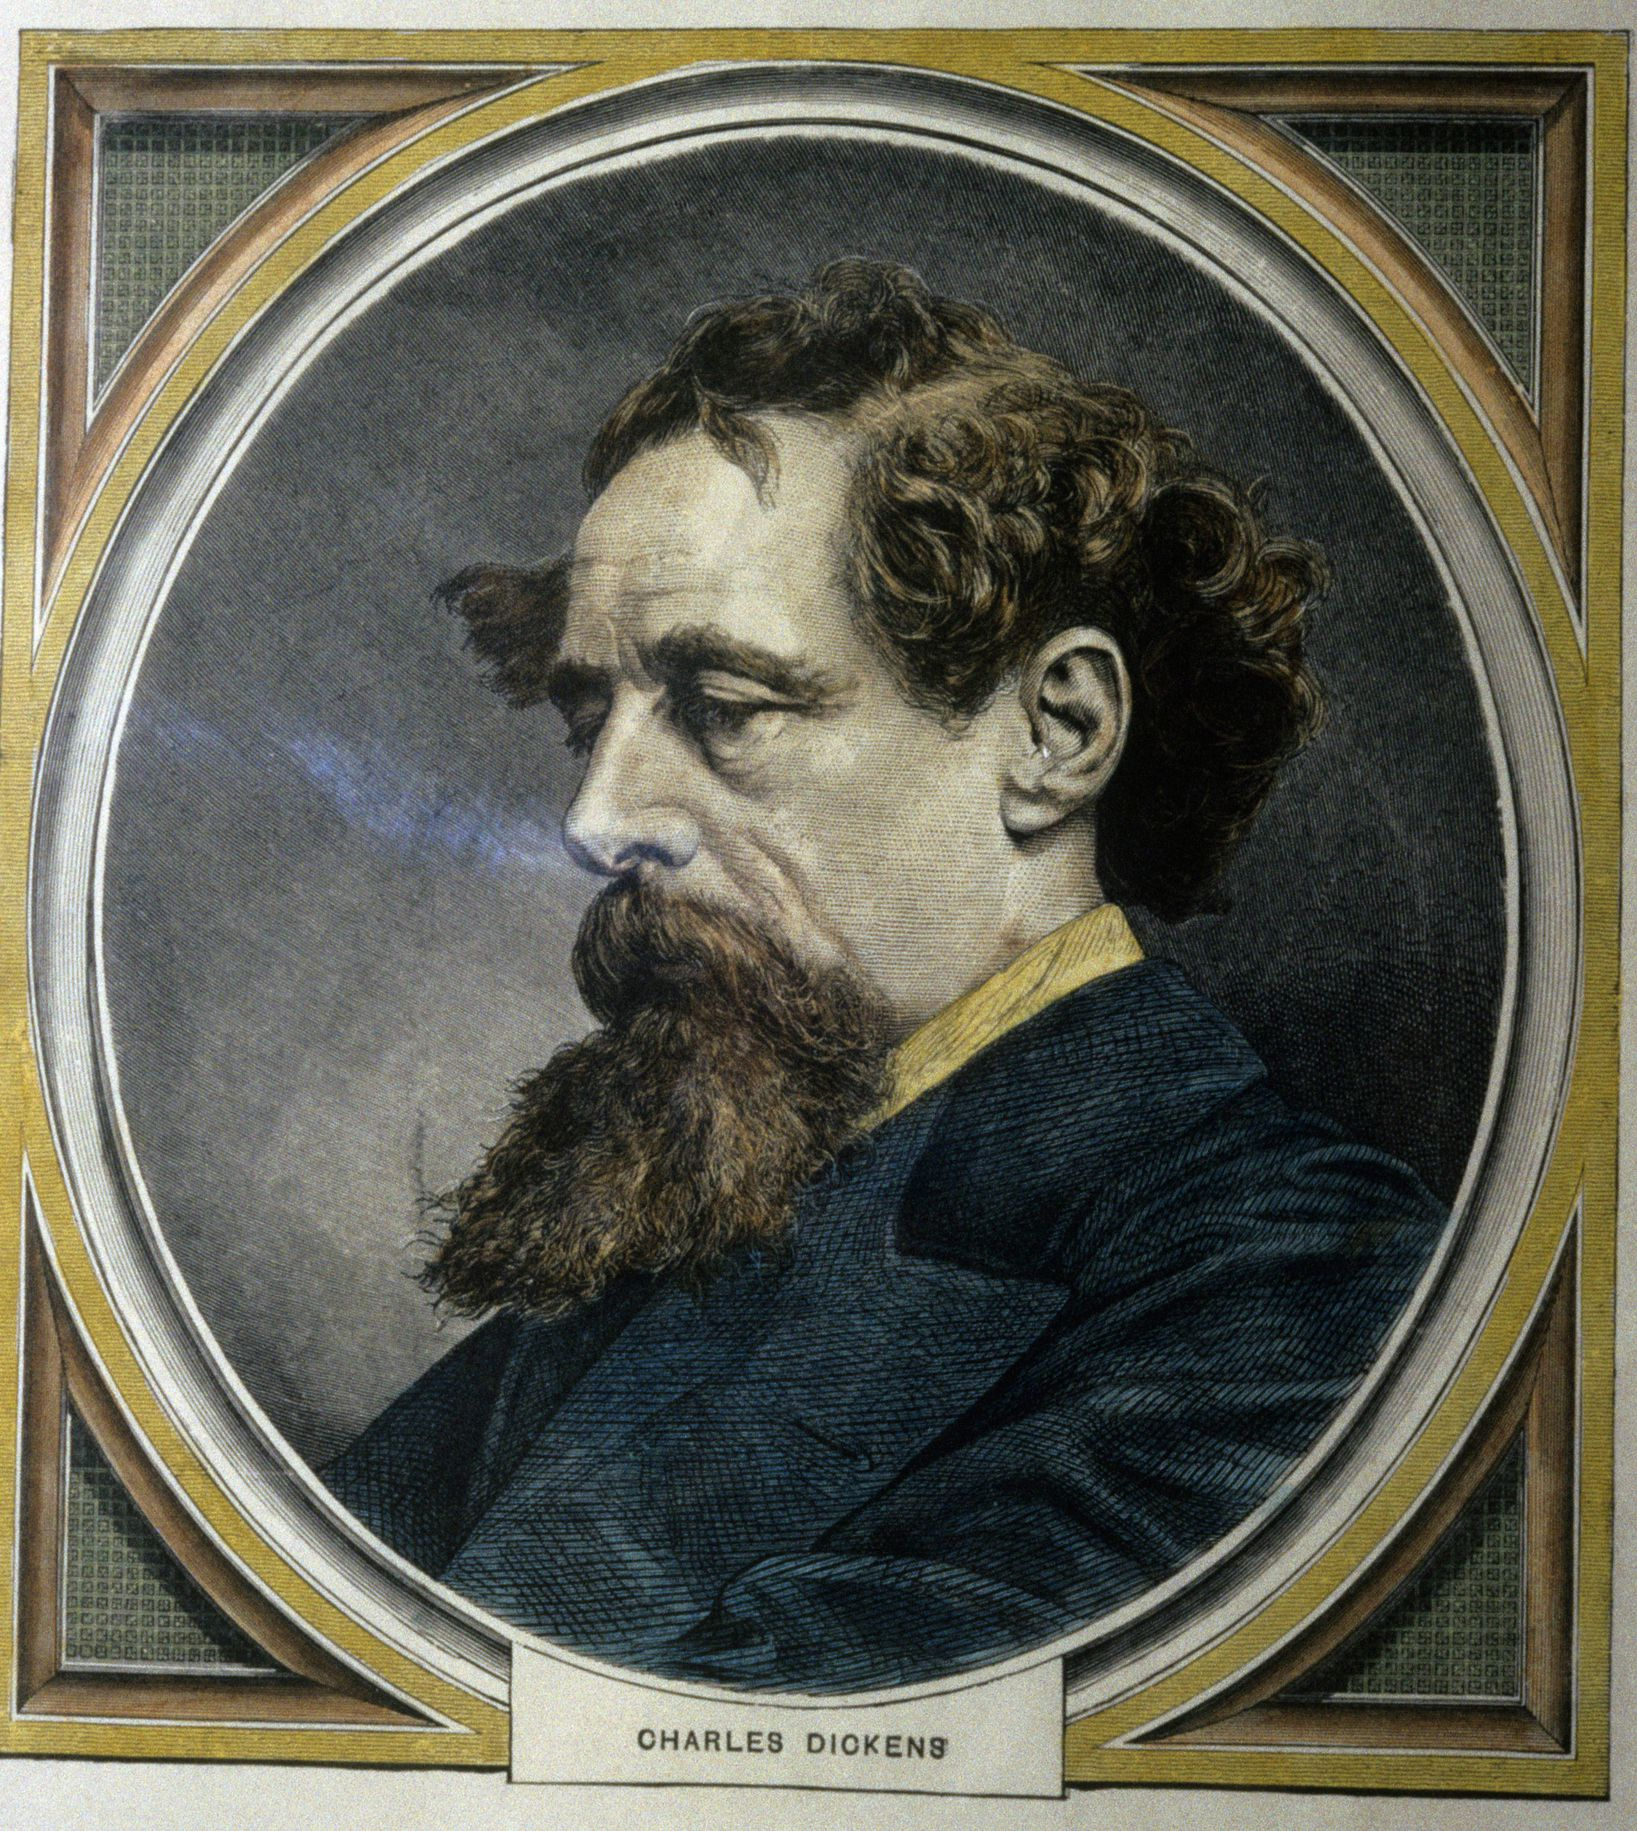 the life and writing techniques of charles dickens This childhood episode shadowed charles dickens' life and colored his writing dickens went on to achieve unprecedented celebrity as the most popular novelist of his century, and his fictional .